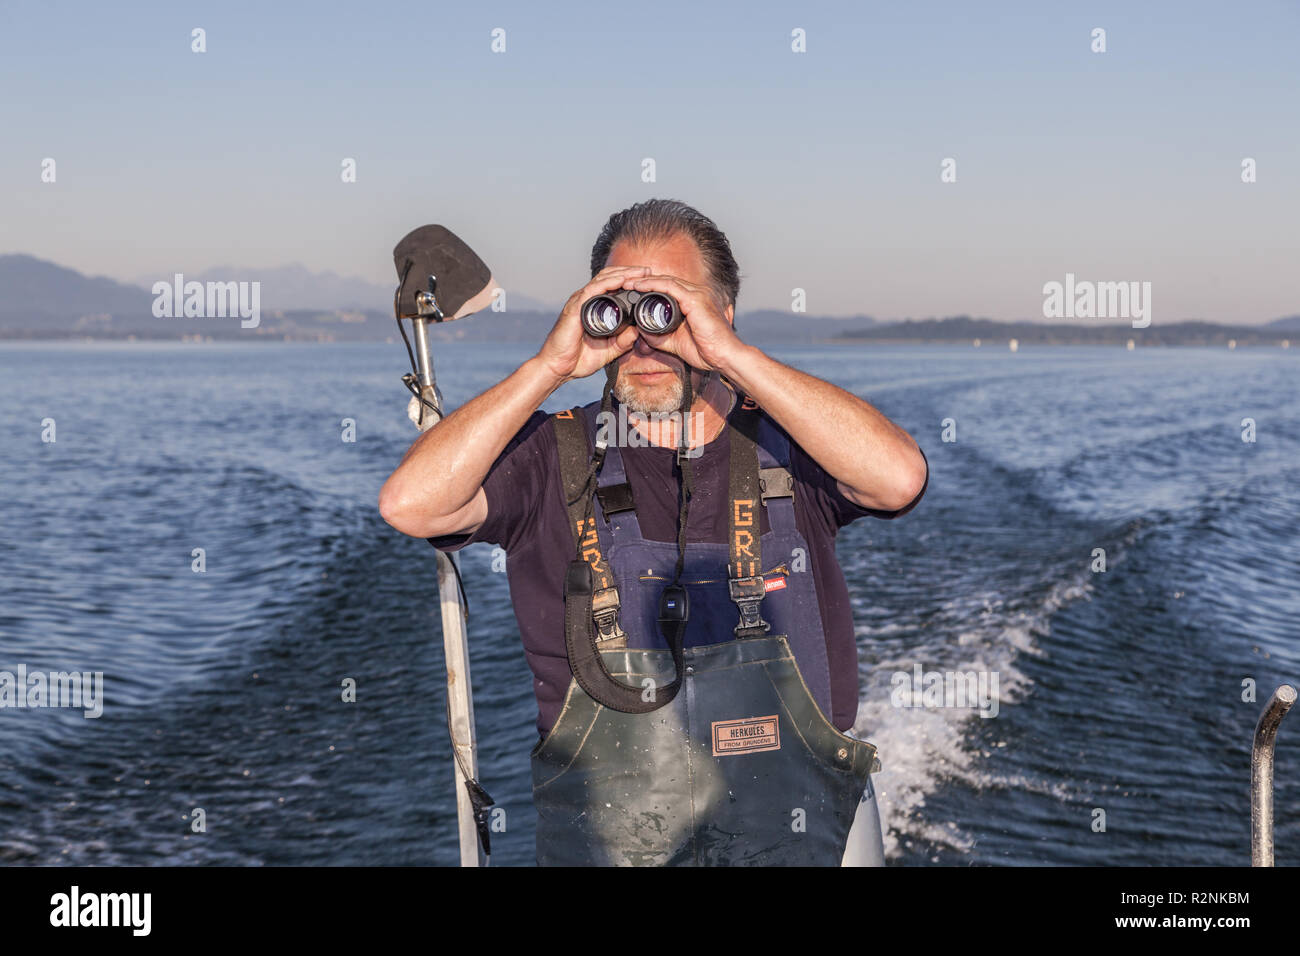 Fisher Thomas Lex from the Fraueninsel at the morning exit on the Chiemsee, Frauenchiemsee, Chiemgau, Upper Bavaria, Bavaria, southern Germany, Germany, Europe - Stock Image